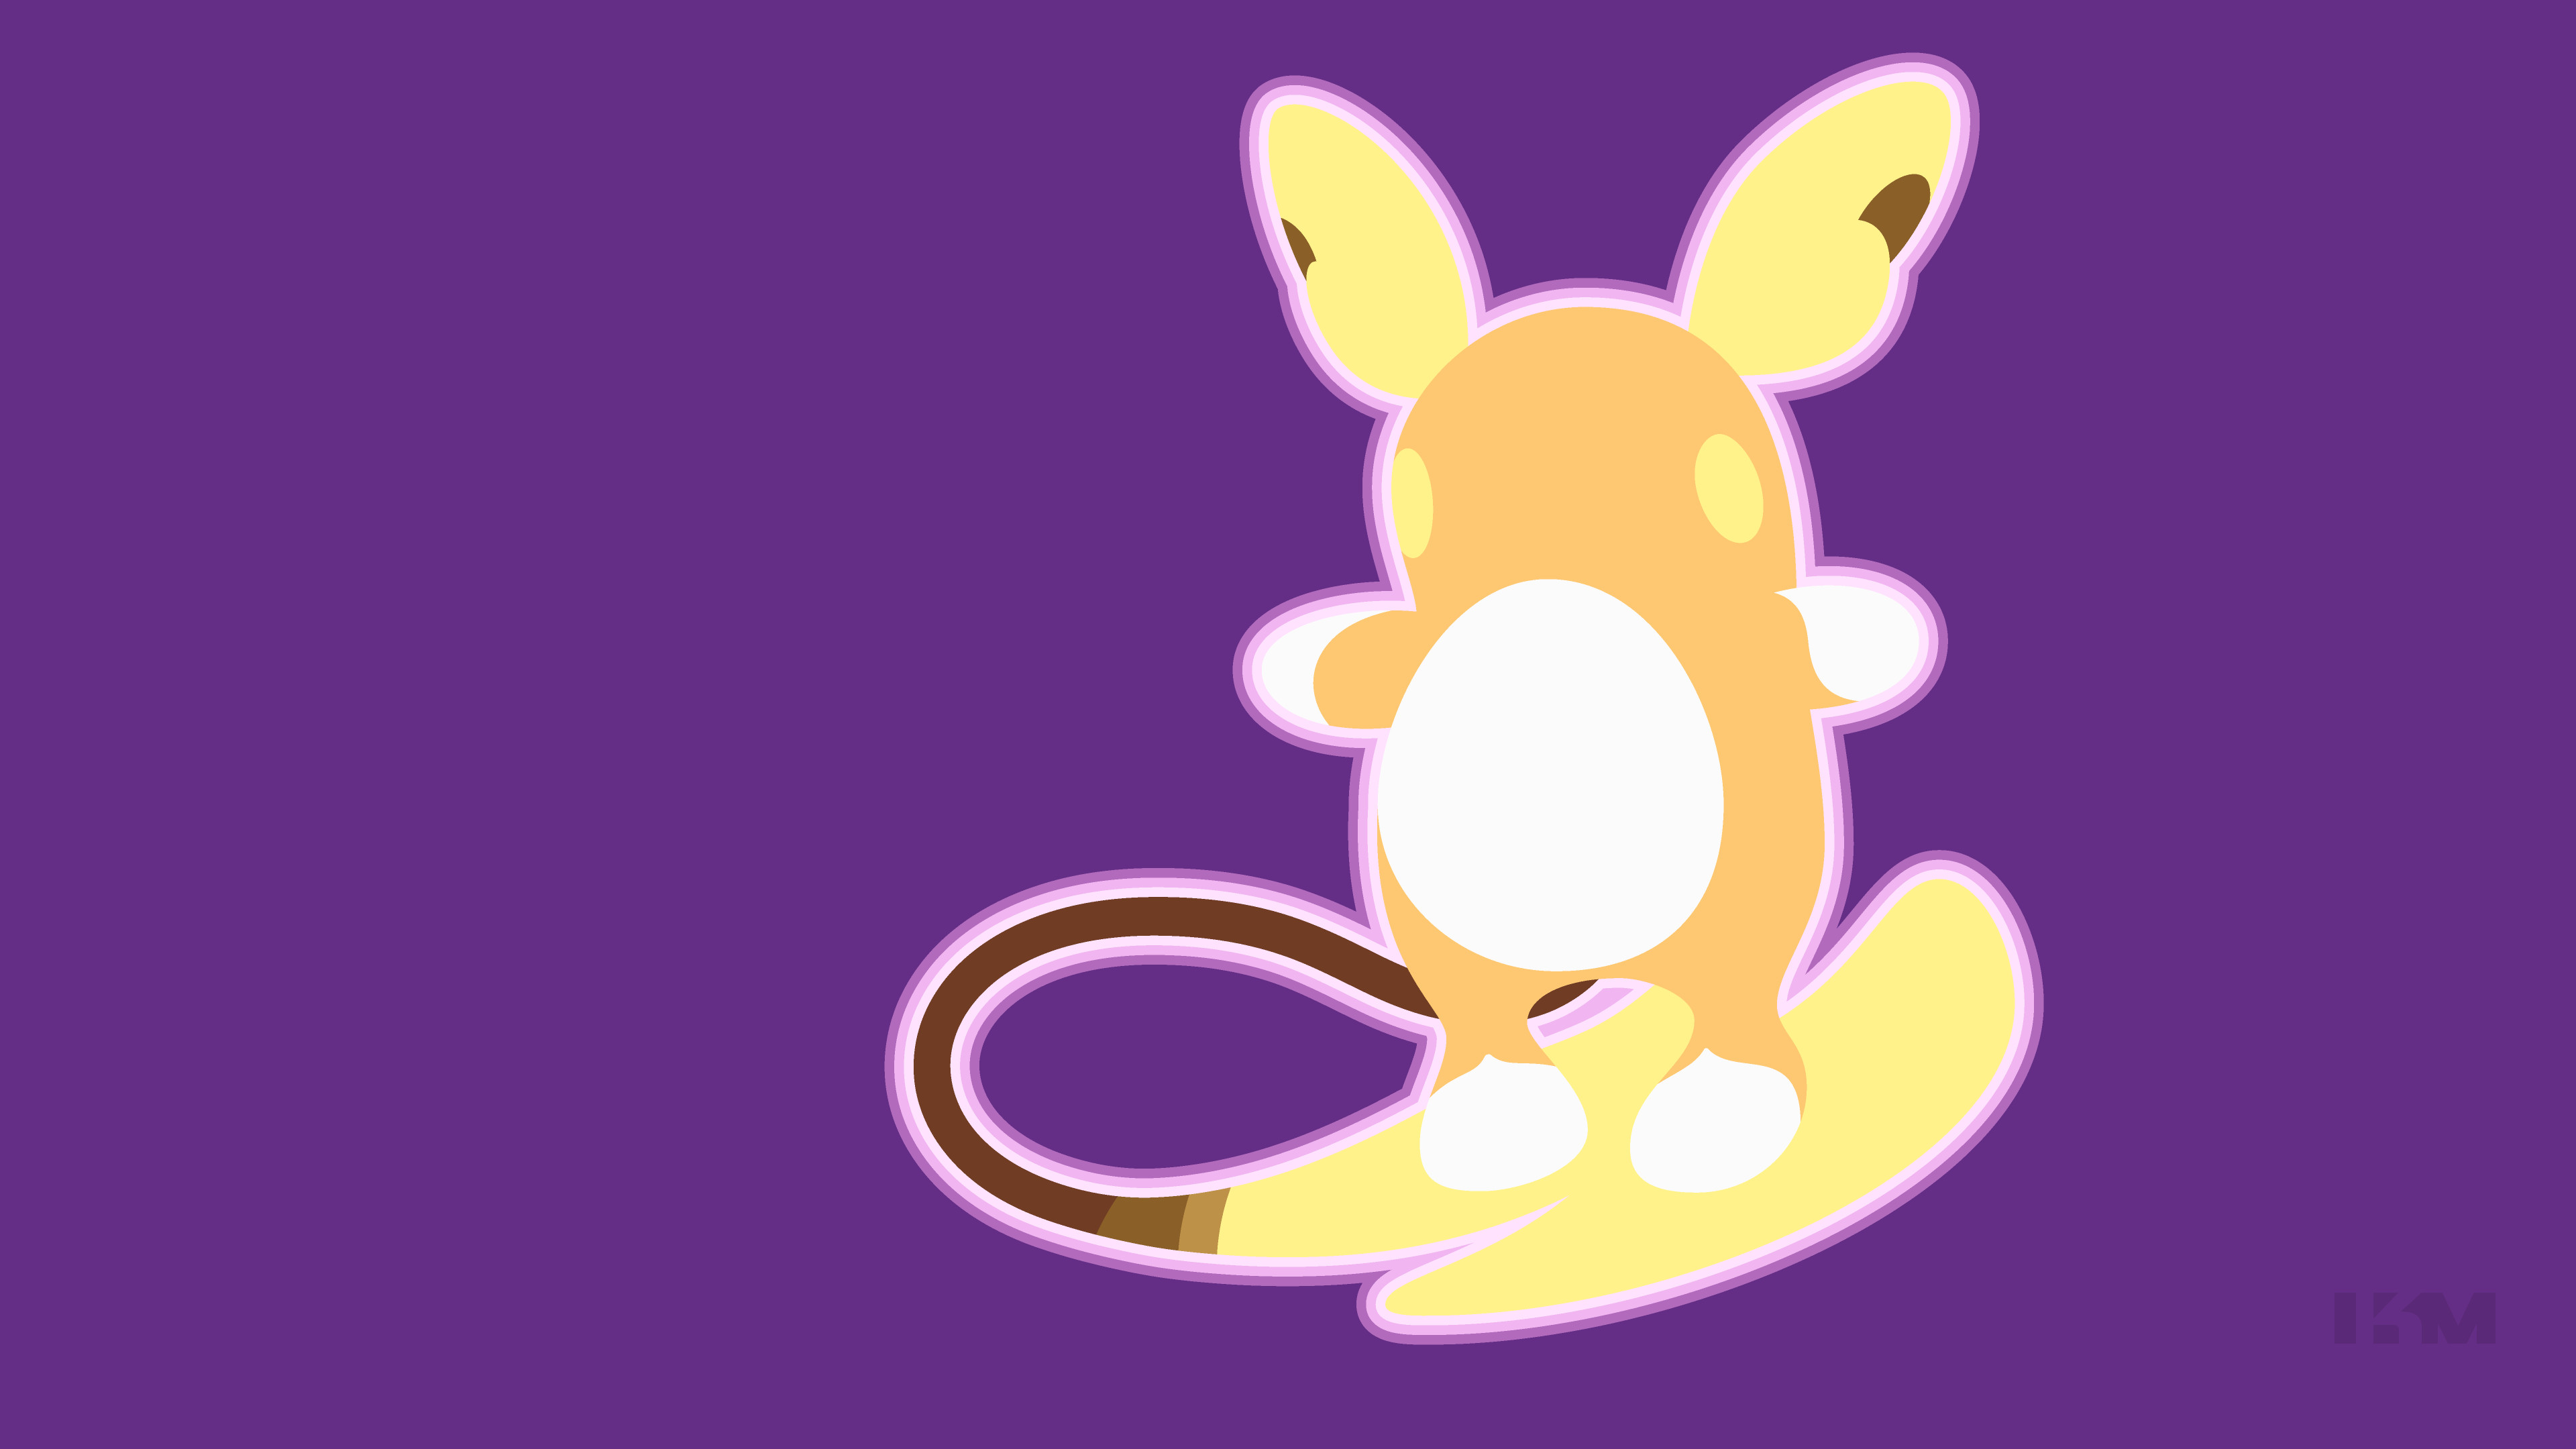 3840x2160 Computerspiele - Pokémon Sun and Moon Raichu (Pokémon) Pokémon Alola Raichu  Wallpaper